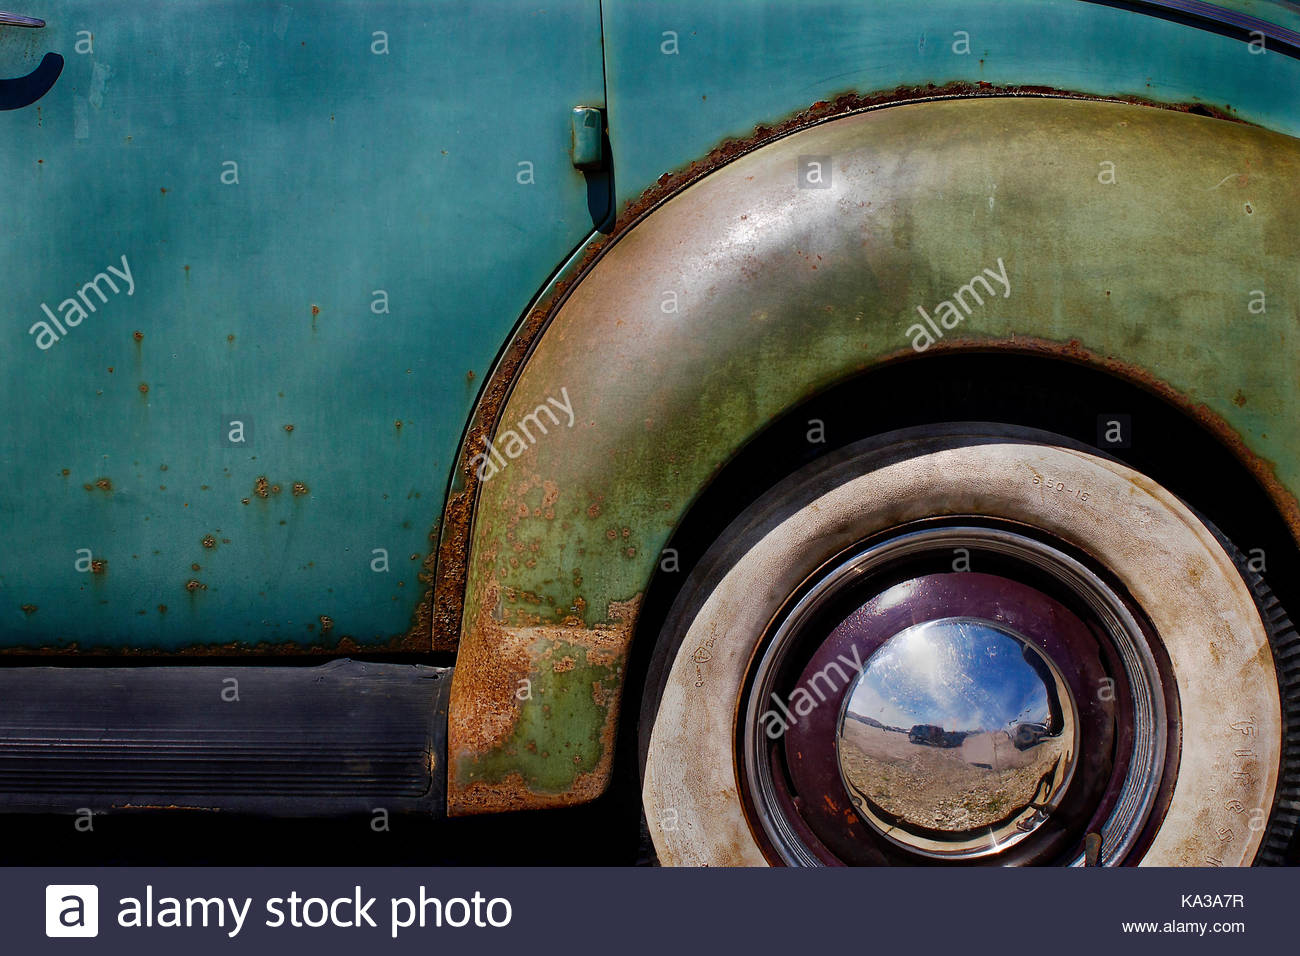 classic 1940u0027s american car with whitewall tires with rust and peeling paint stock image